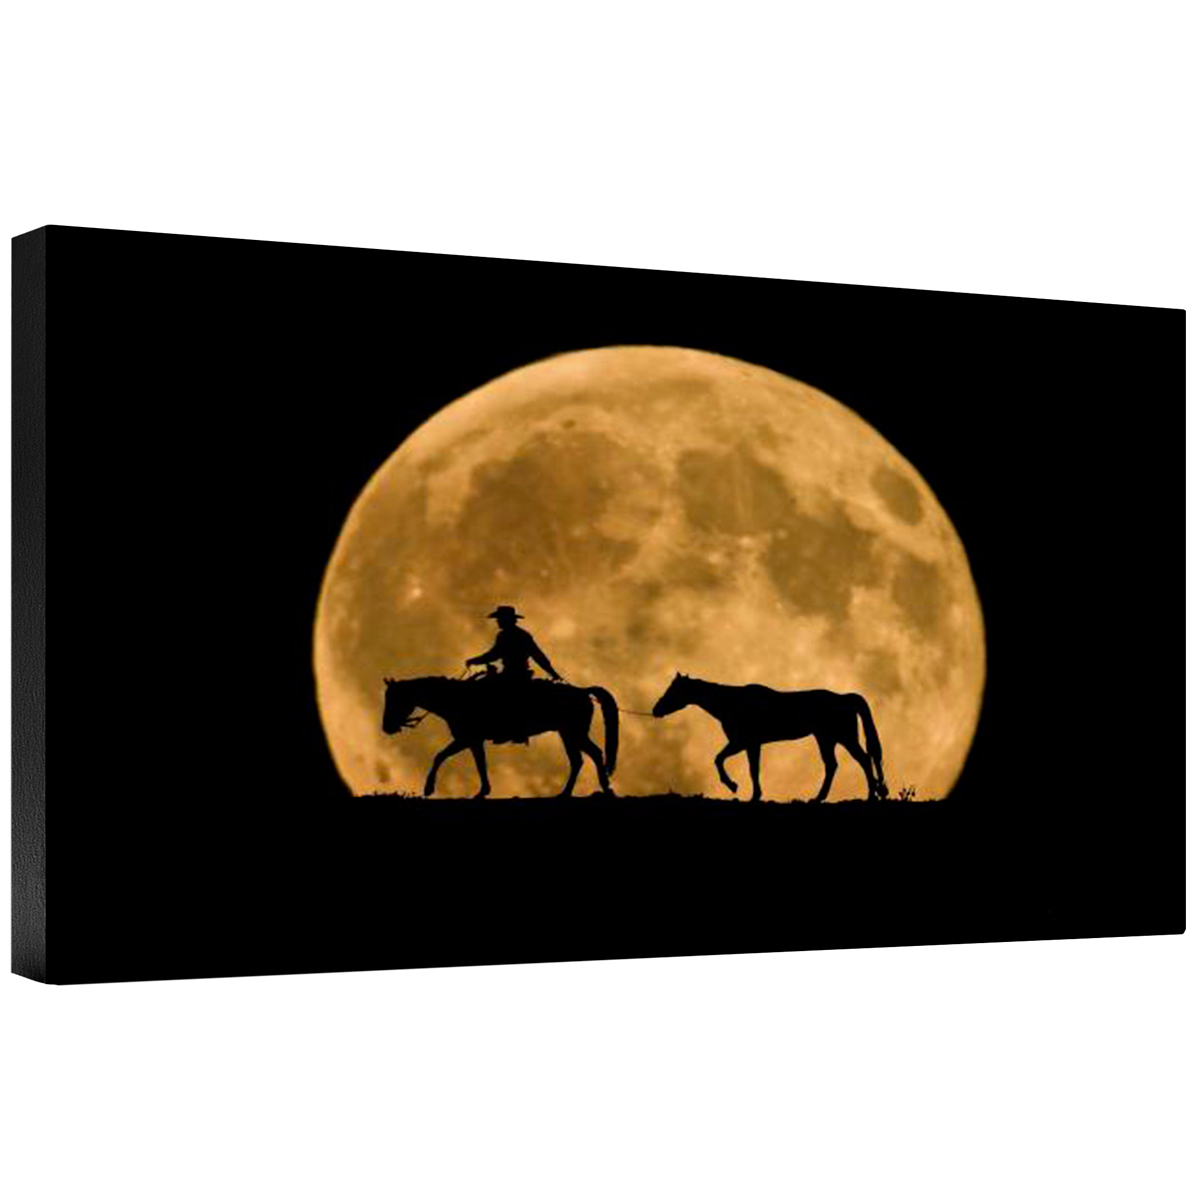 Full Moon Ride Gallery Wrapped Canvas